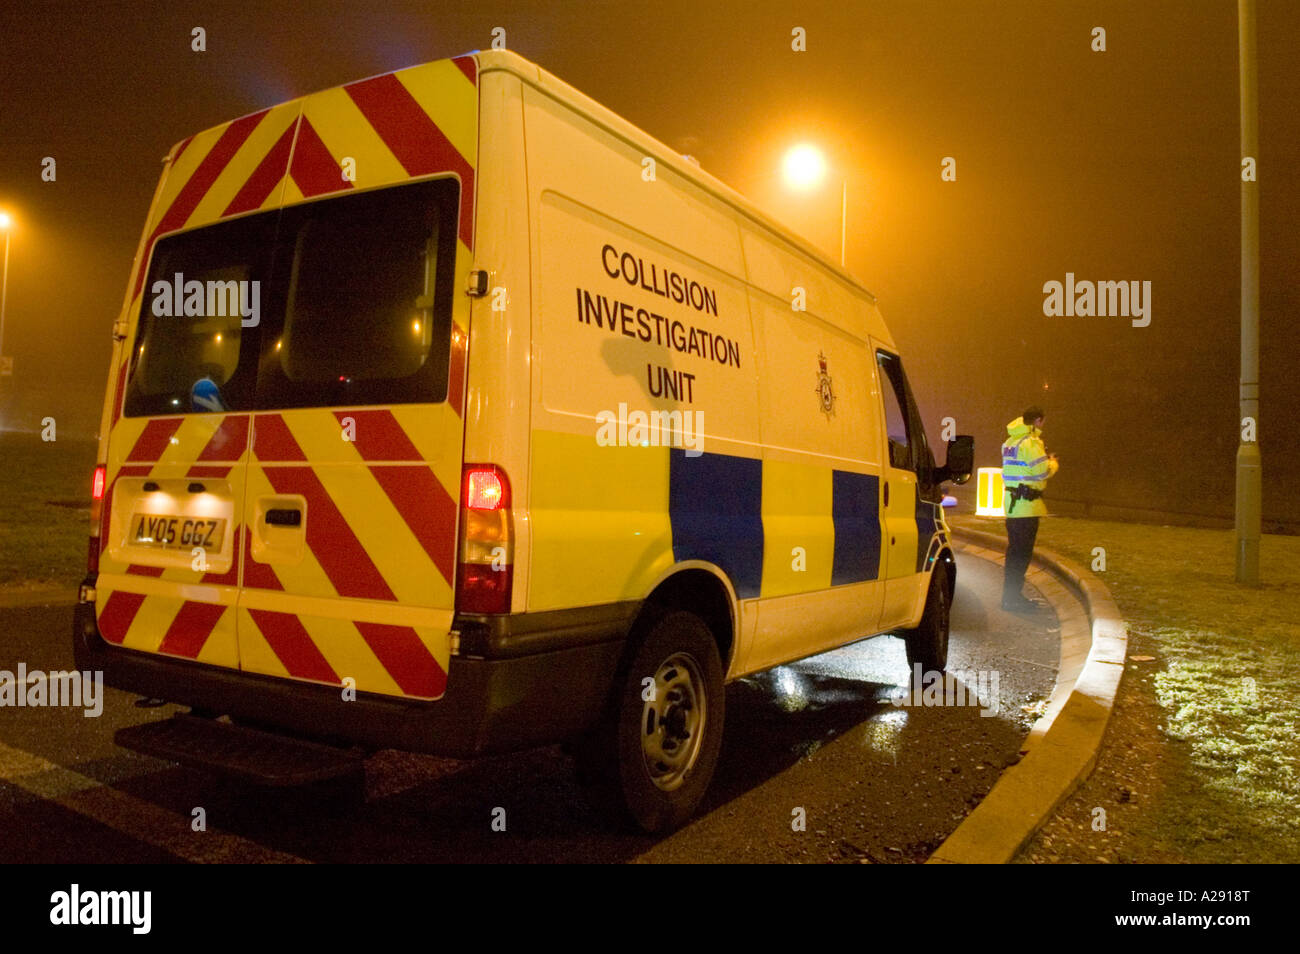 police Collision Investigation Unit at the scene of an accident ...